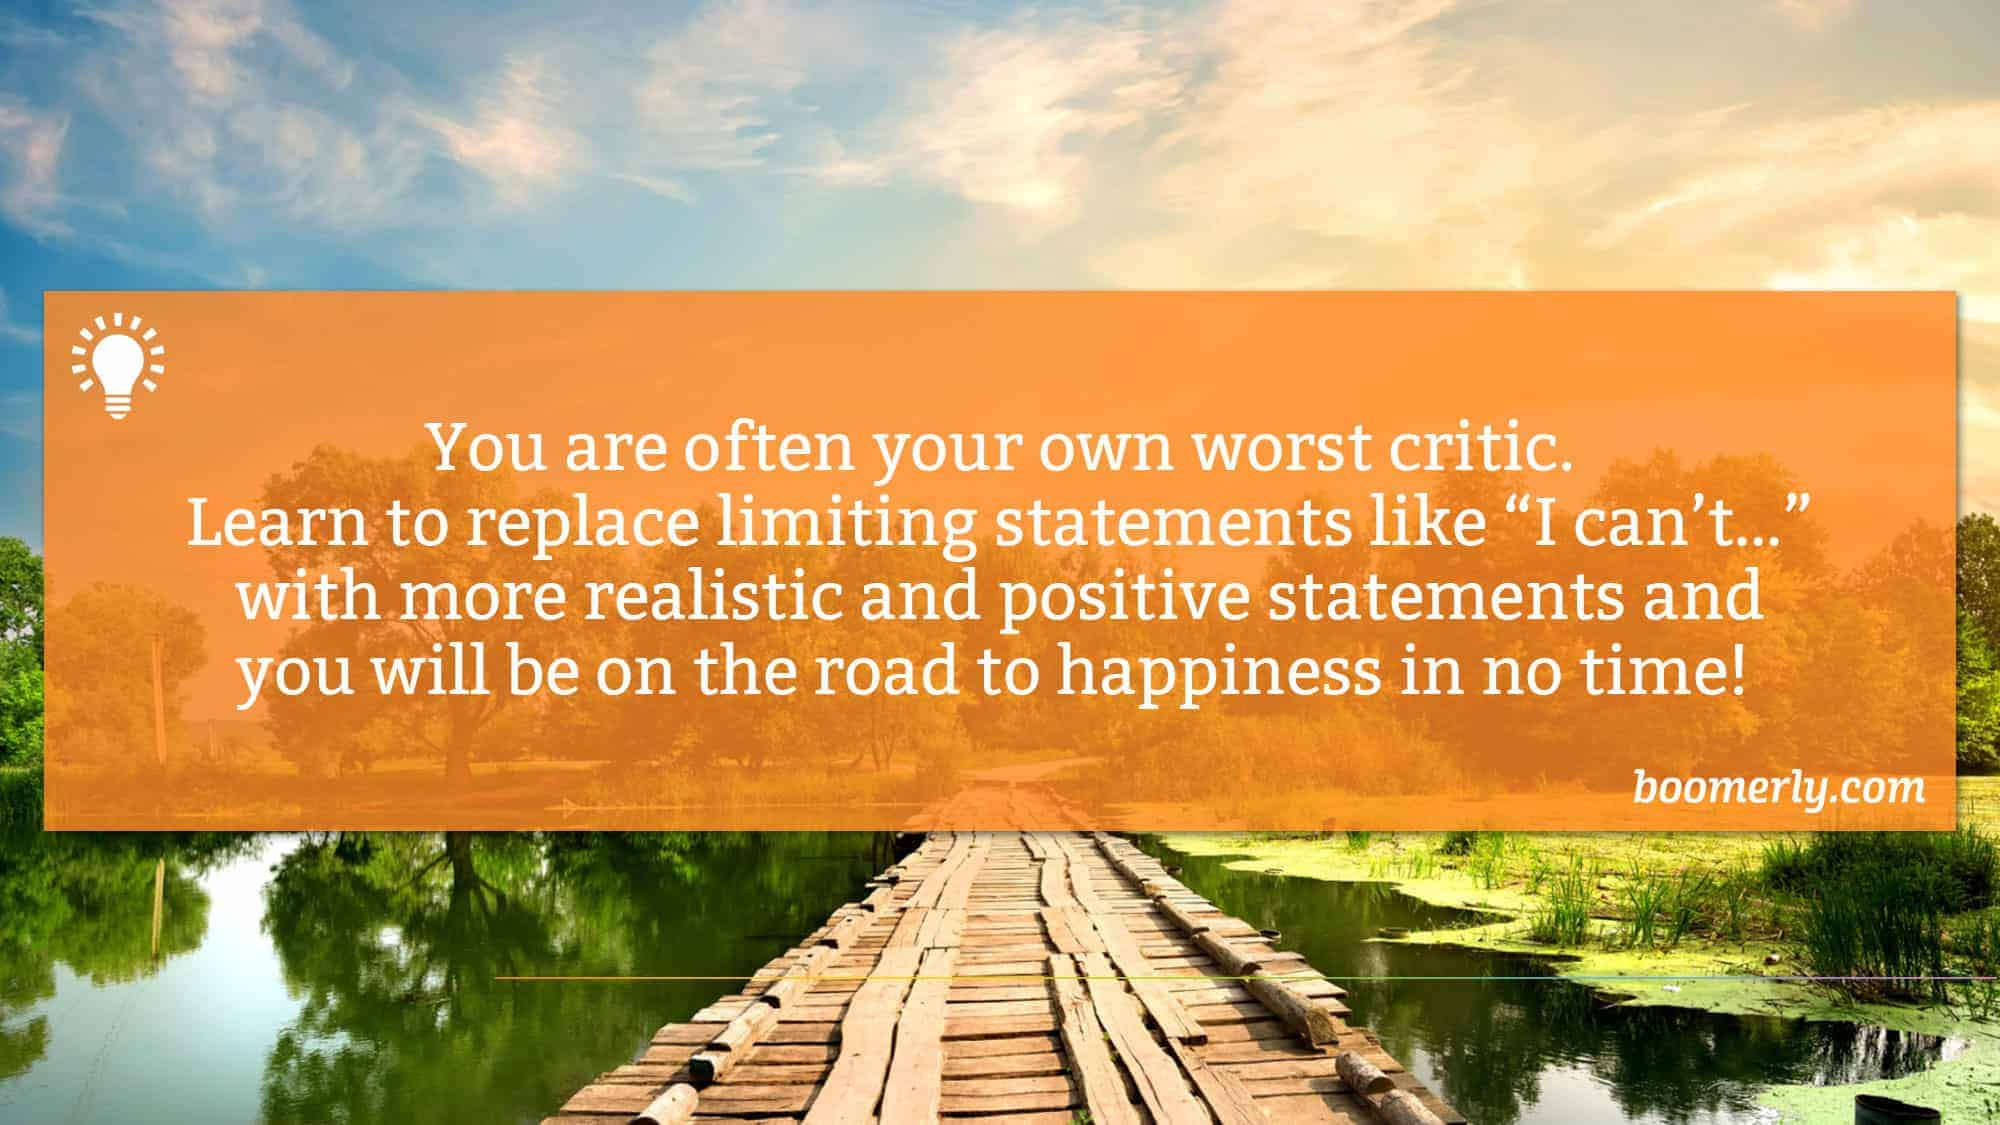 """Stop being so hard on yourself - You are often your own worst critic. Learn to replace limiting statements like """"I can't…"""" with more realistic and positive statements and you will be on the road to happiness in no time!"""